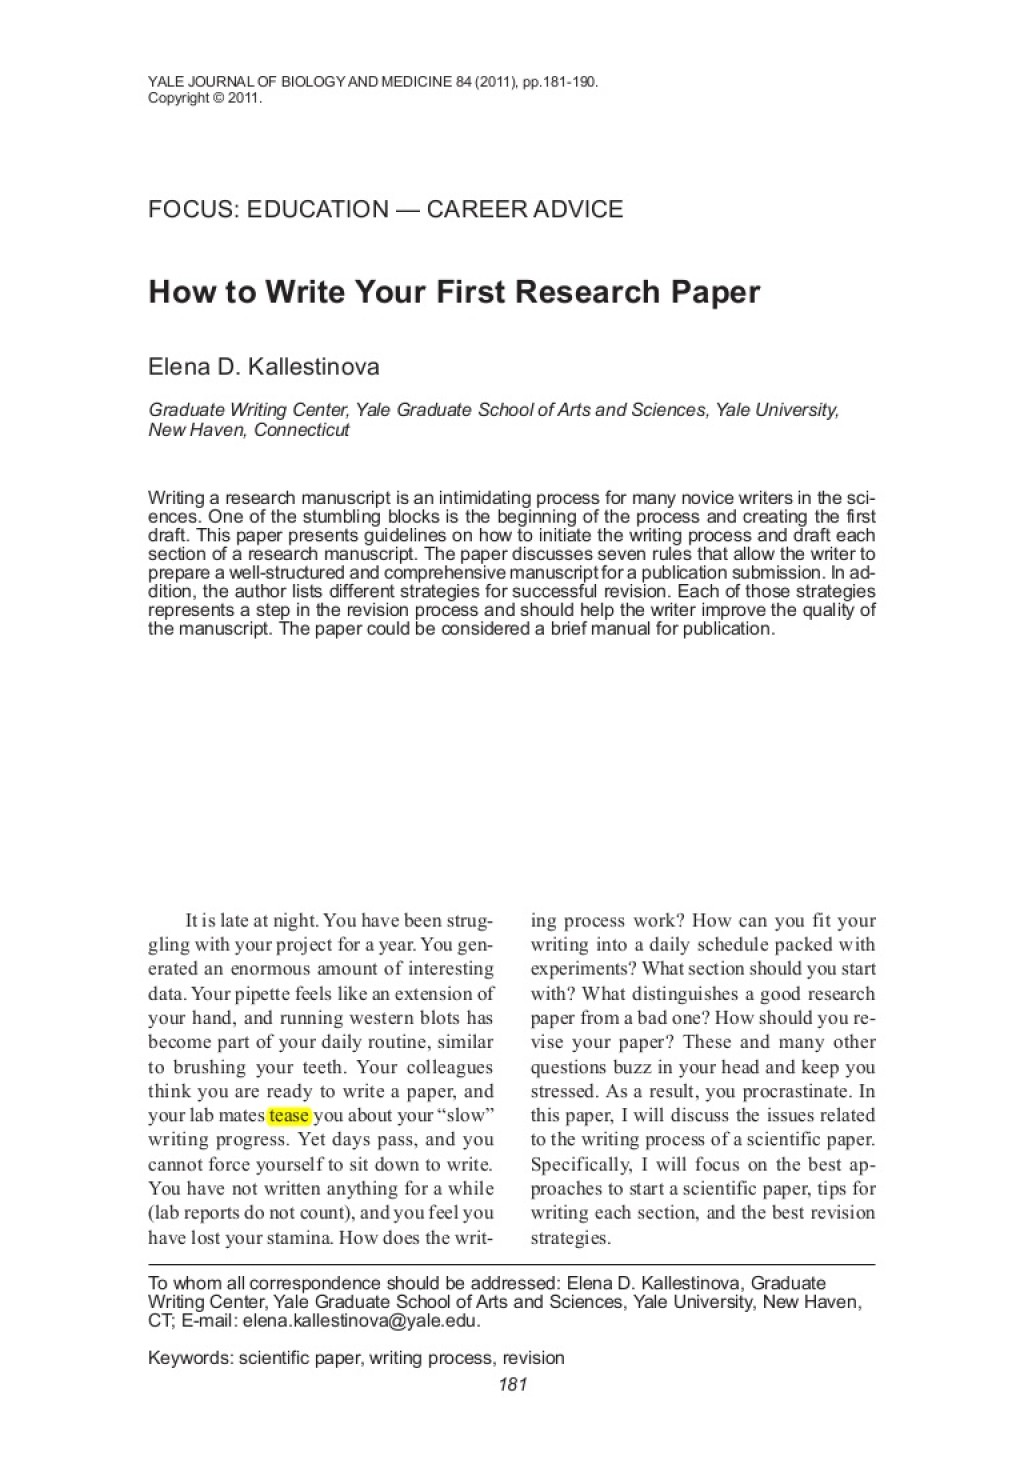 024 Research Paper Write Papers Howtowriteyourfirstresearchpaper Lva1 App6891 Thumbnail Frightening How To A Introduction Apa Service In Latex Large